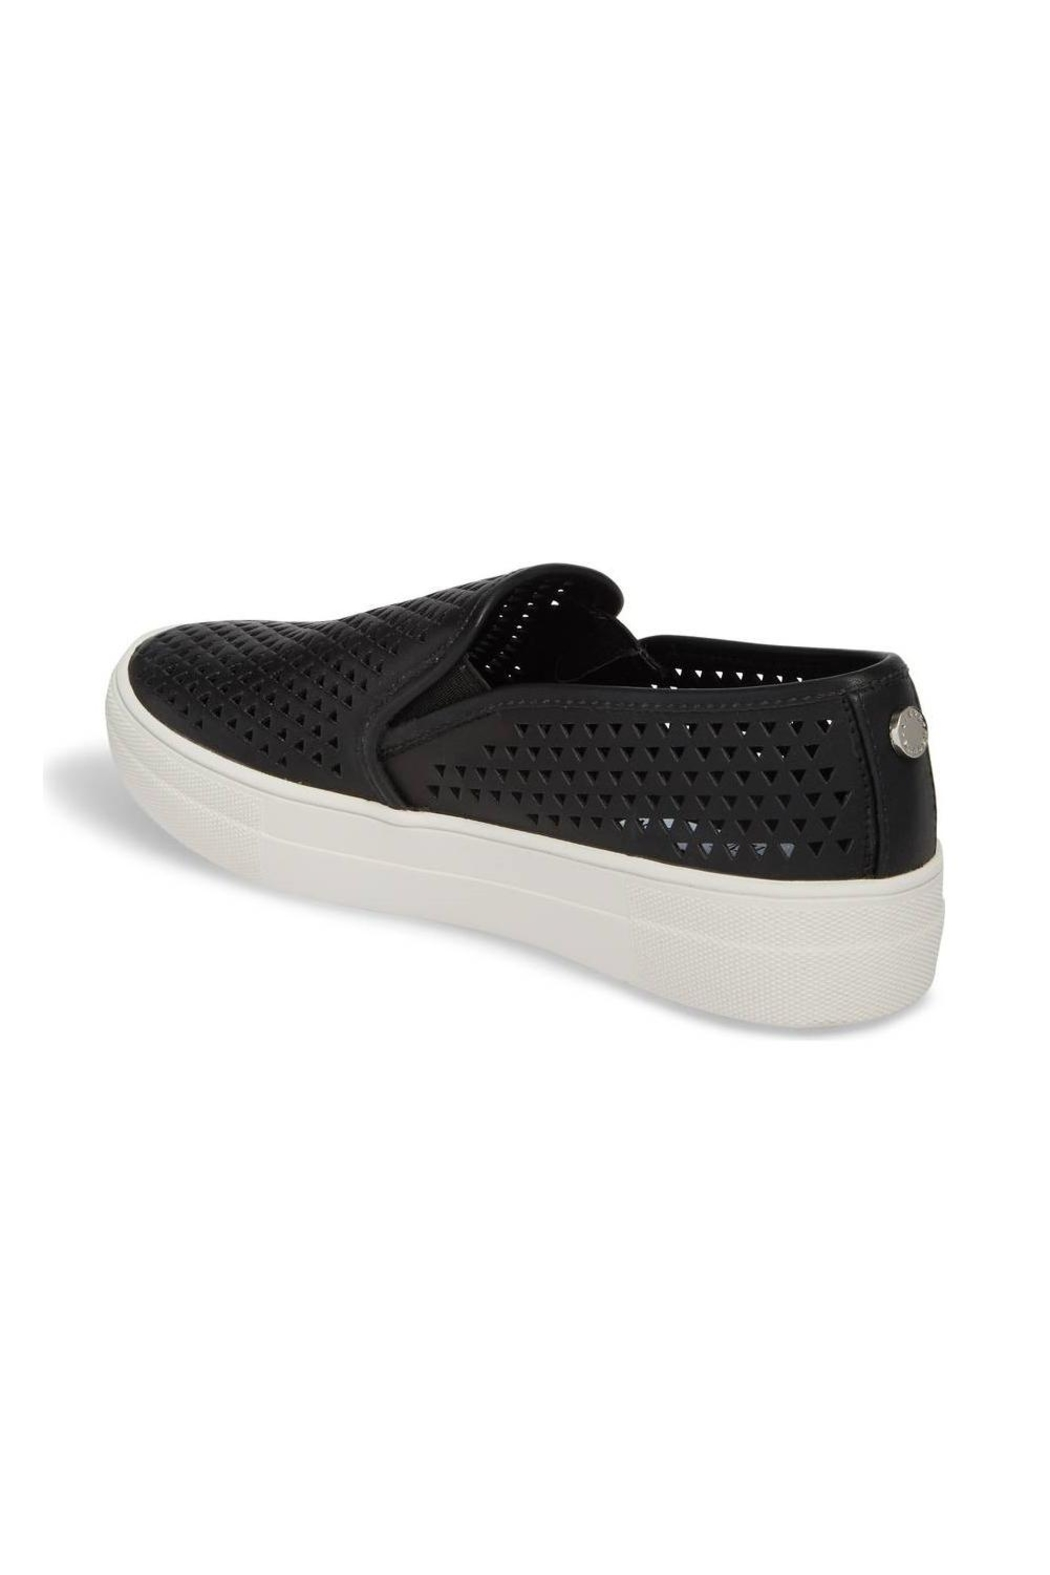 Steve Madden Gal-P Perforated Slip-On - Front Full Image